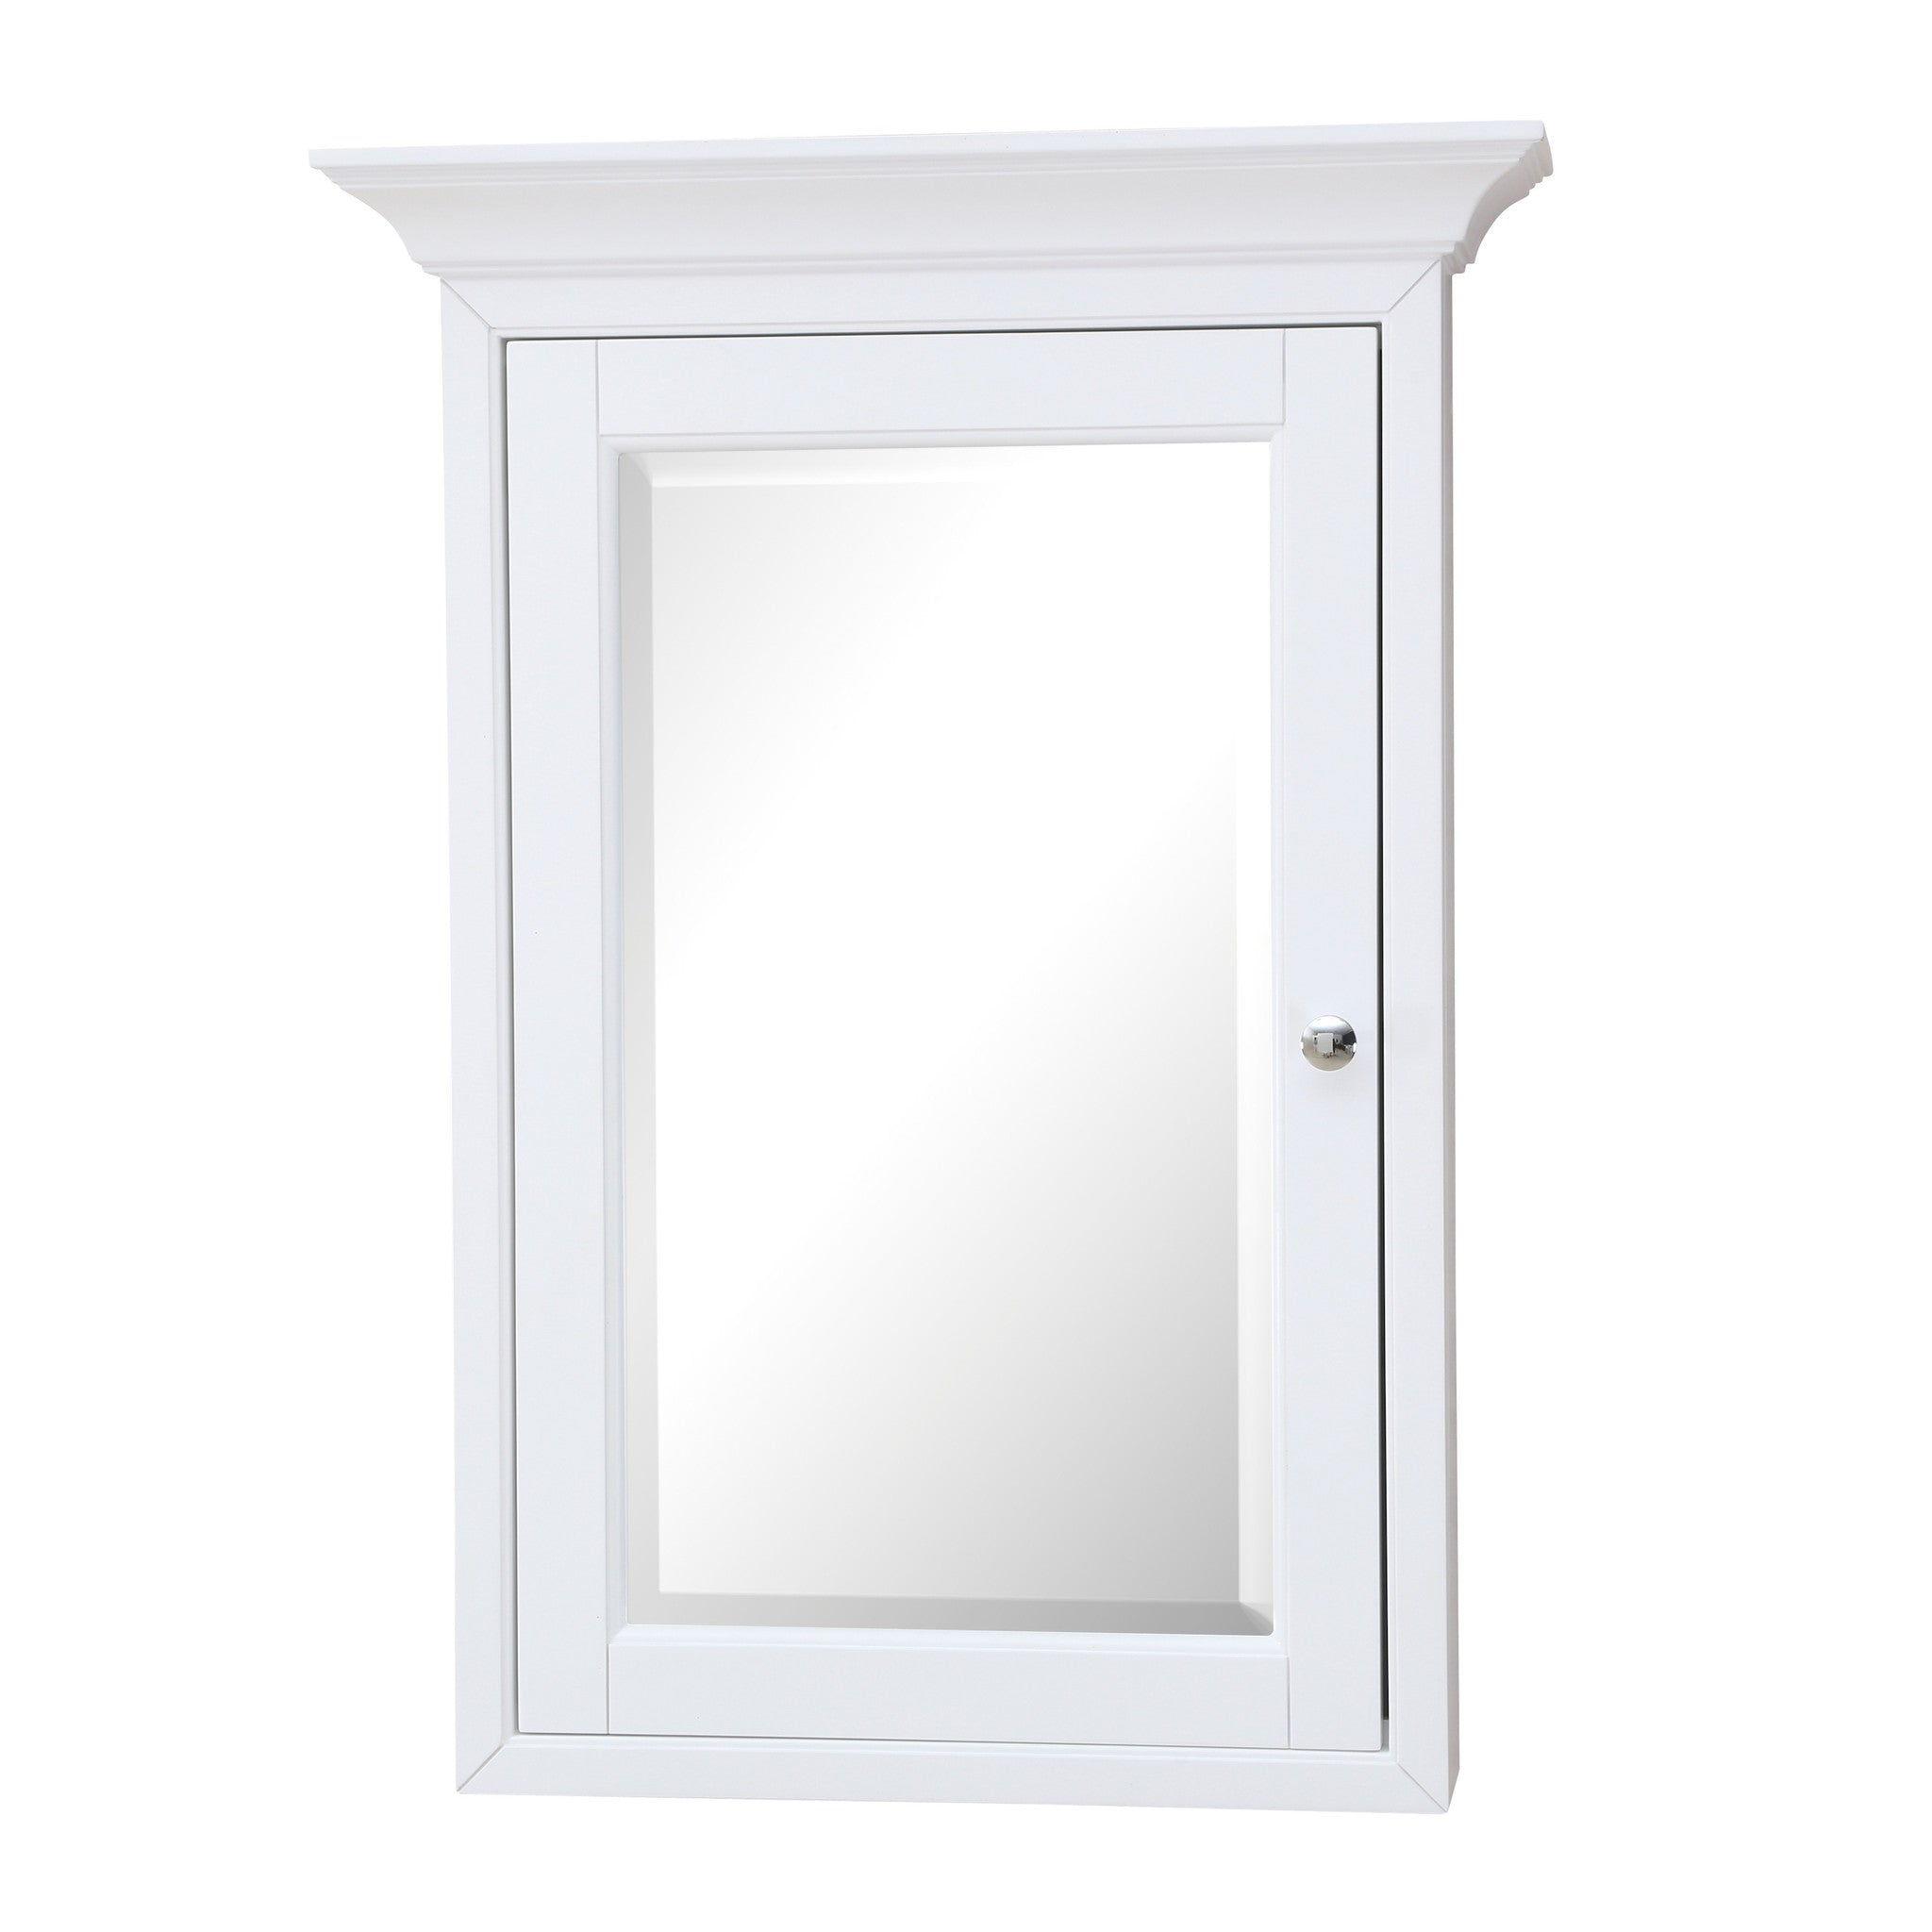 Picture of: Newport Wall Mounted Medicine Cabinet White Kitchenbathcollection